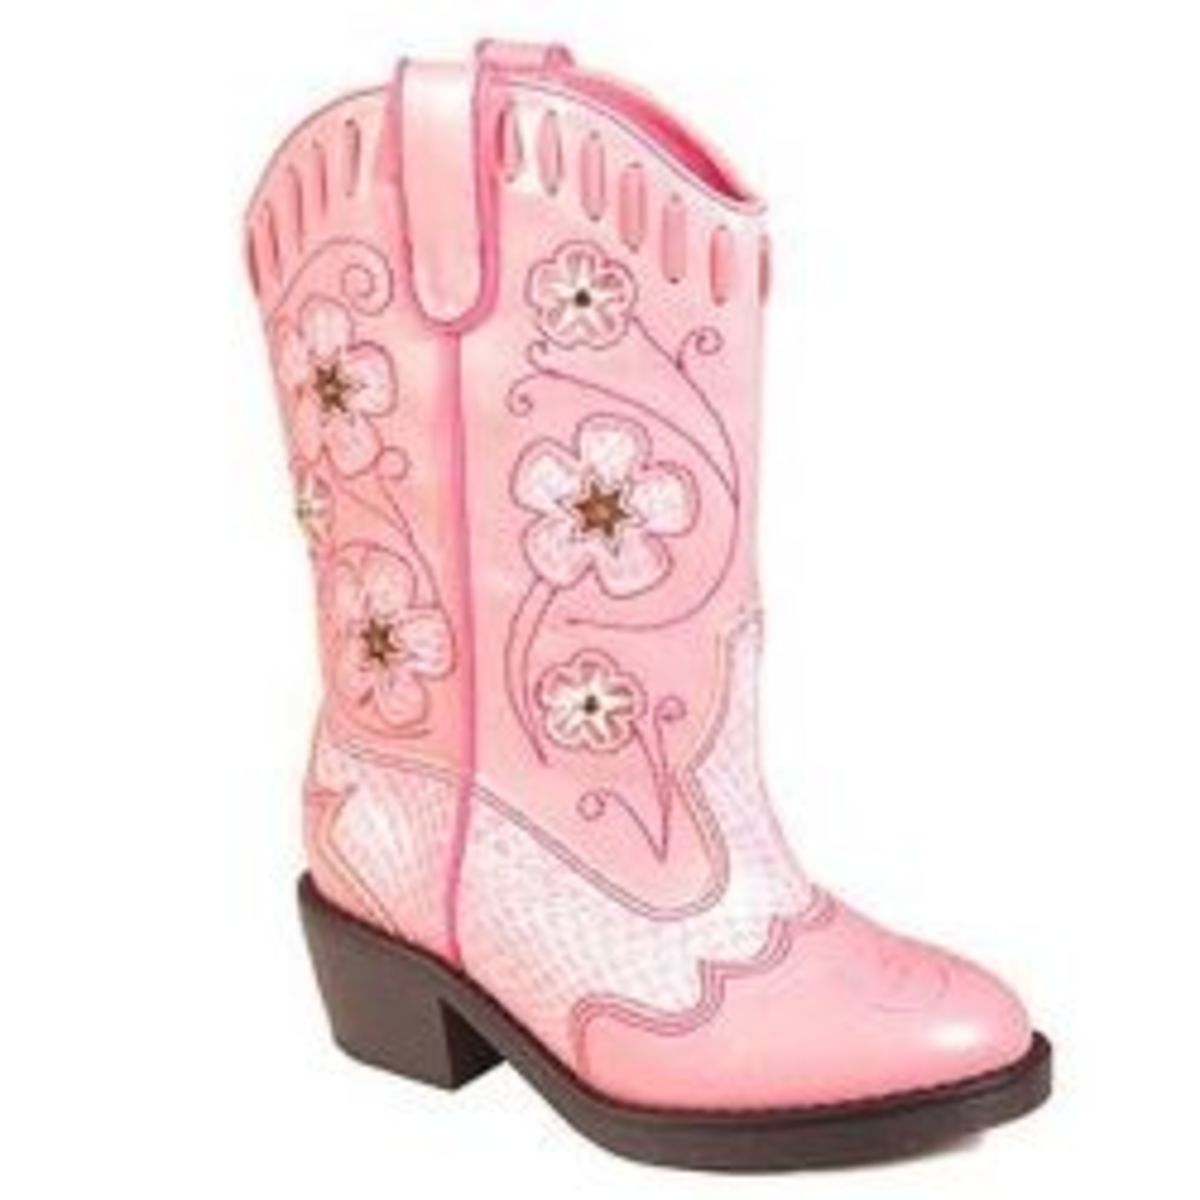 Little Girls' Cowgirl Boots & More!